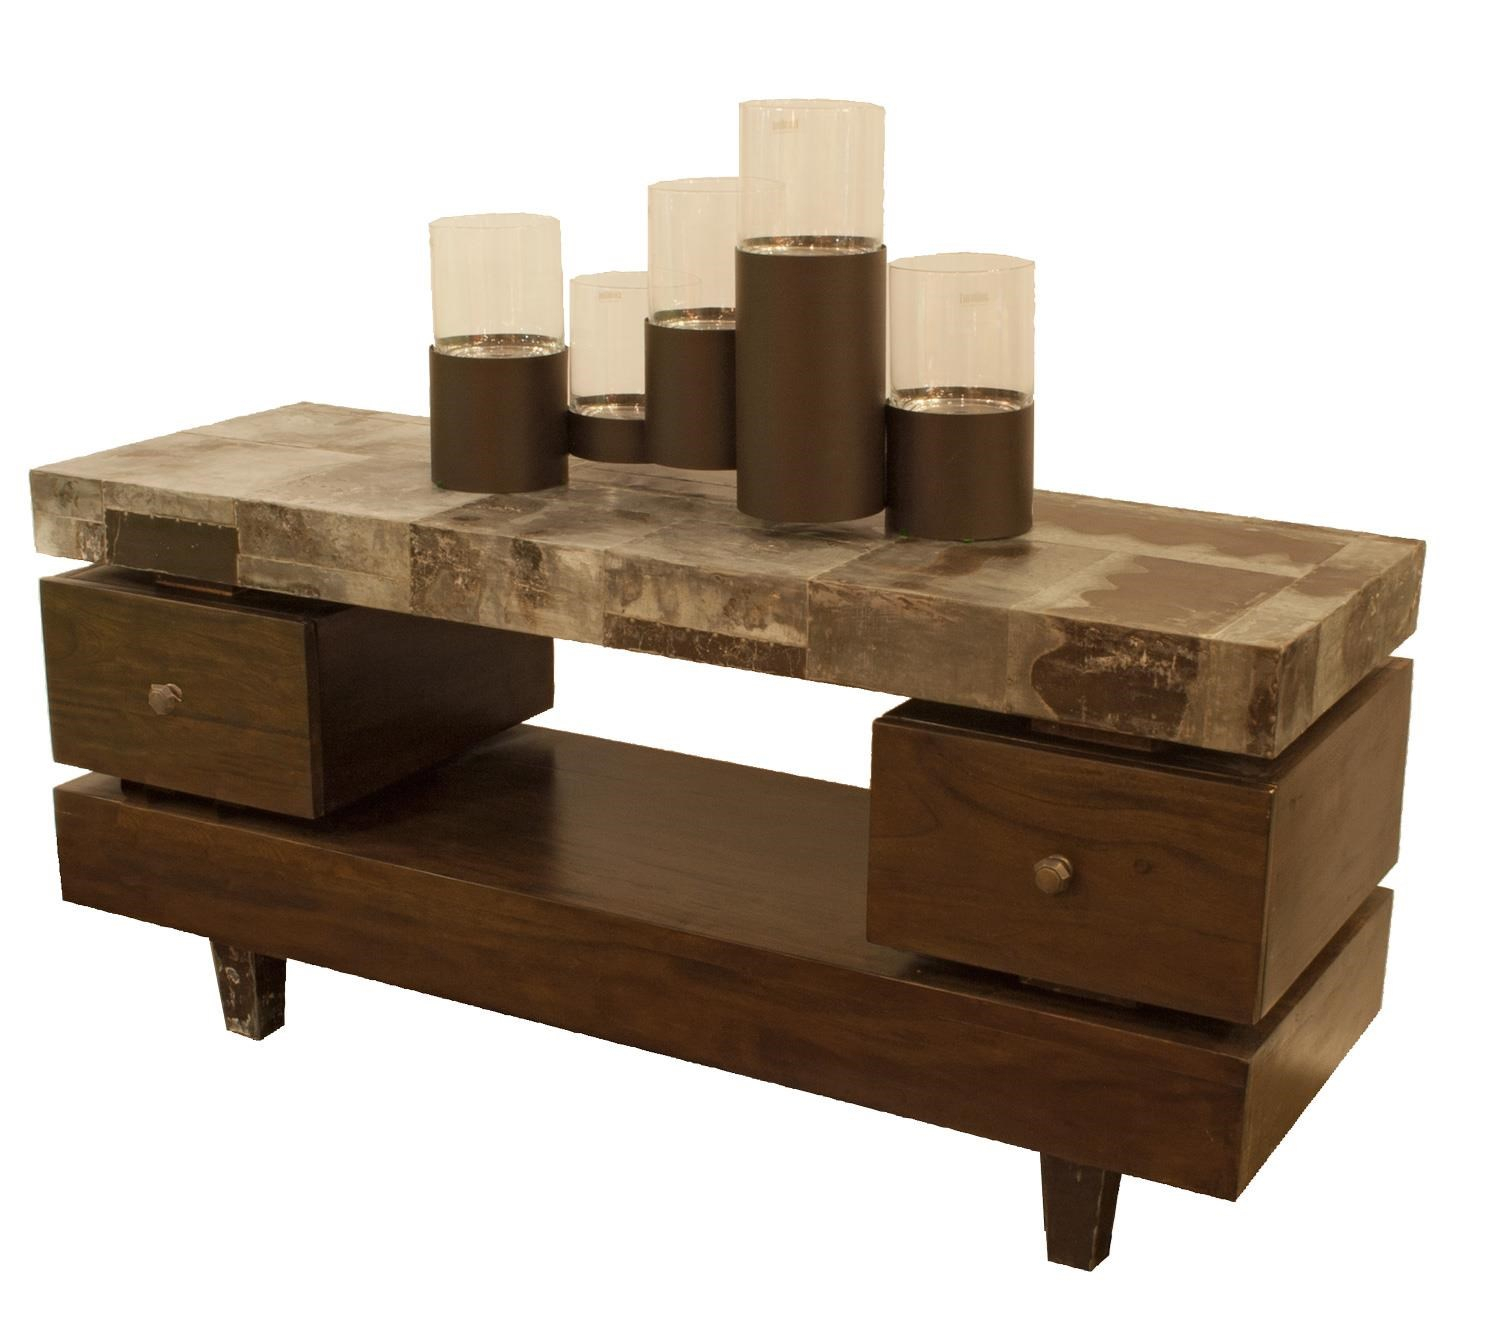 Bramble Remi Tv Stand | Boulevard Home Furnishings | Tv Stands With Regard To Remi Console Tables (View 23 of 30)